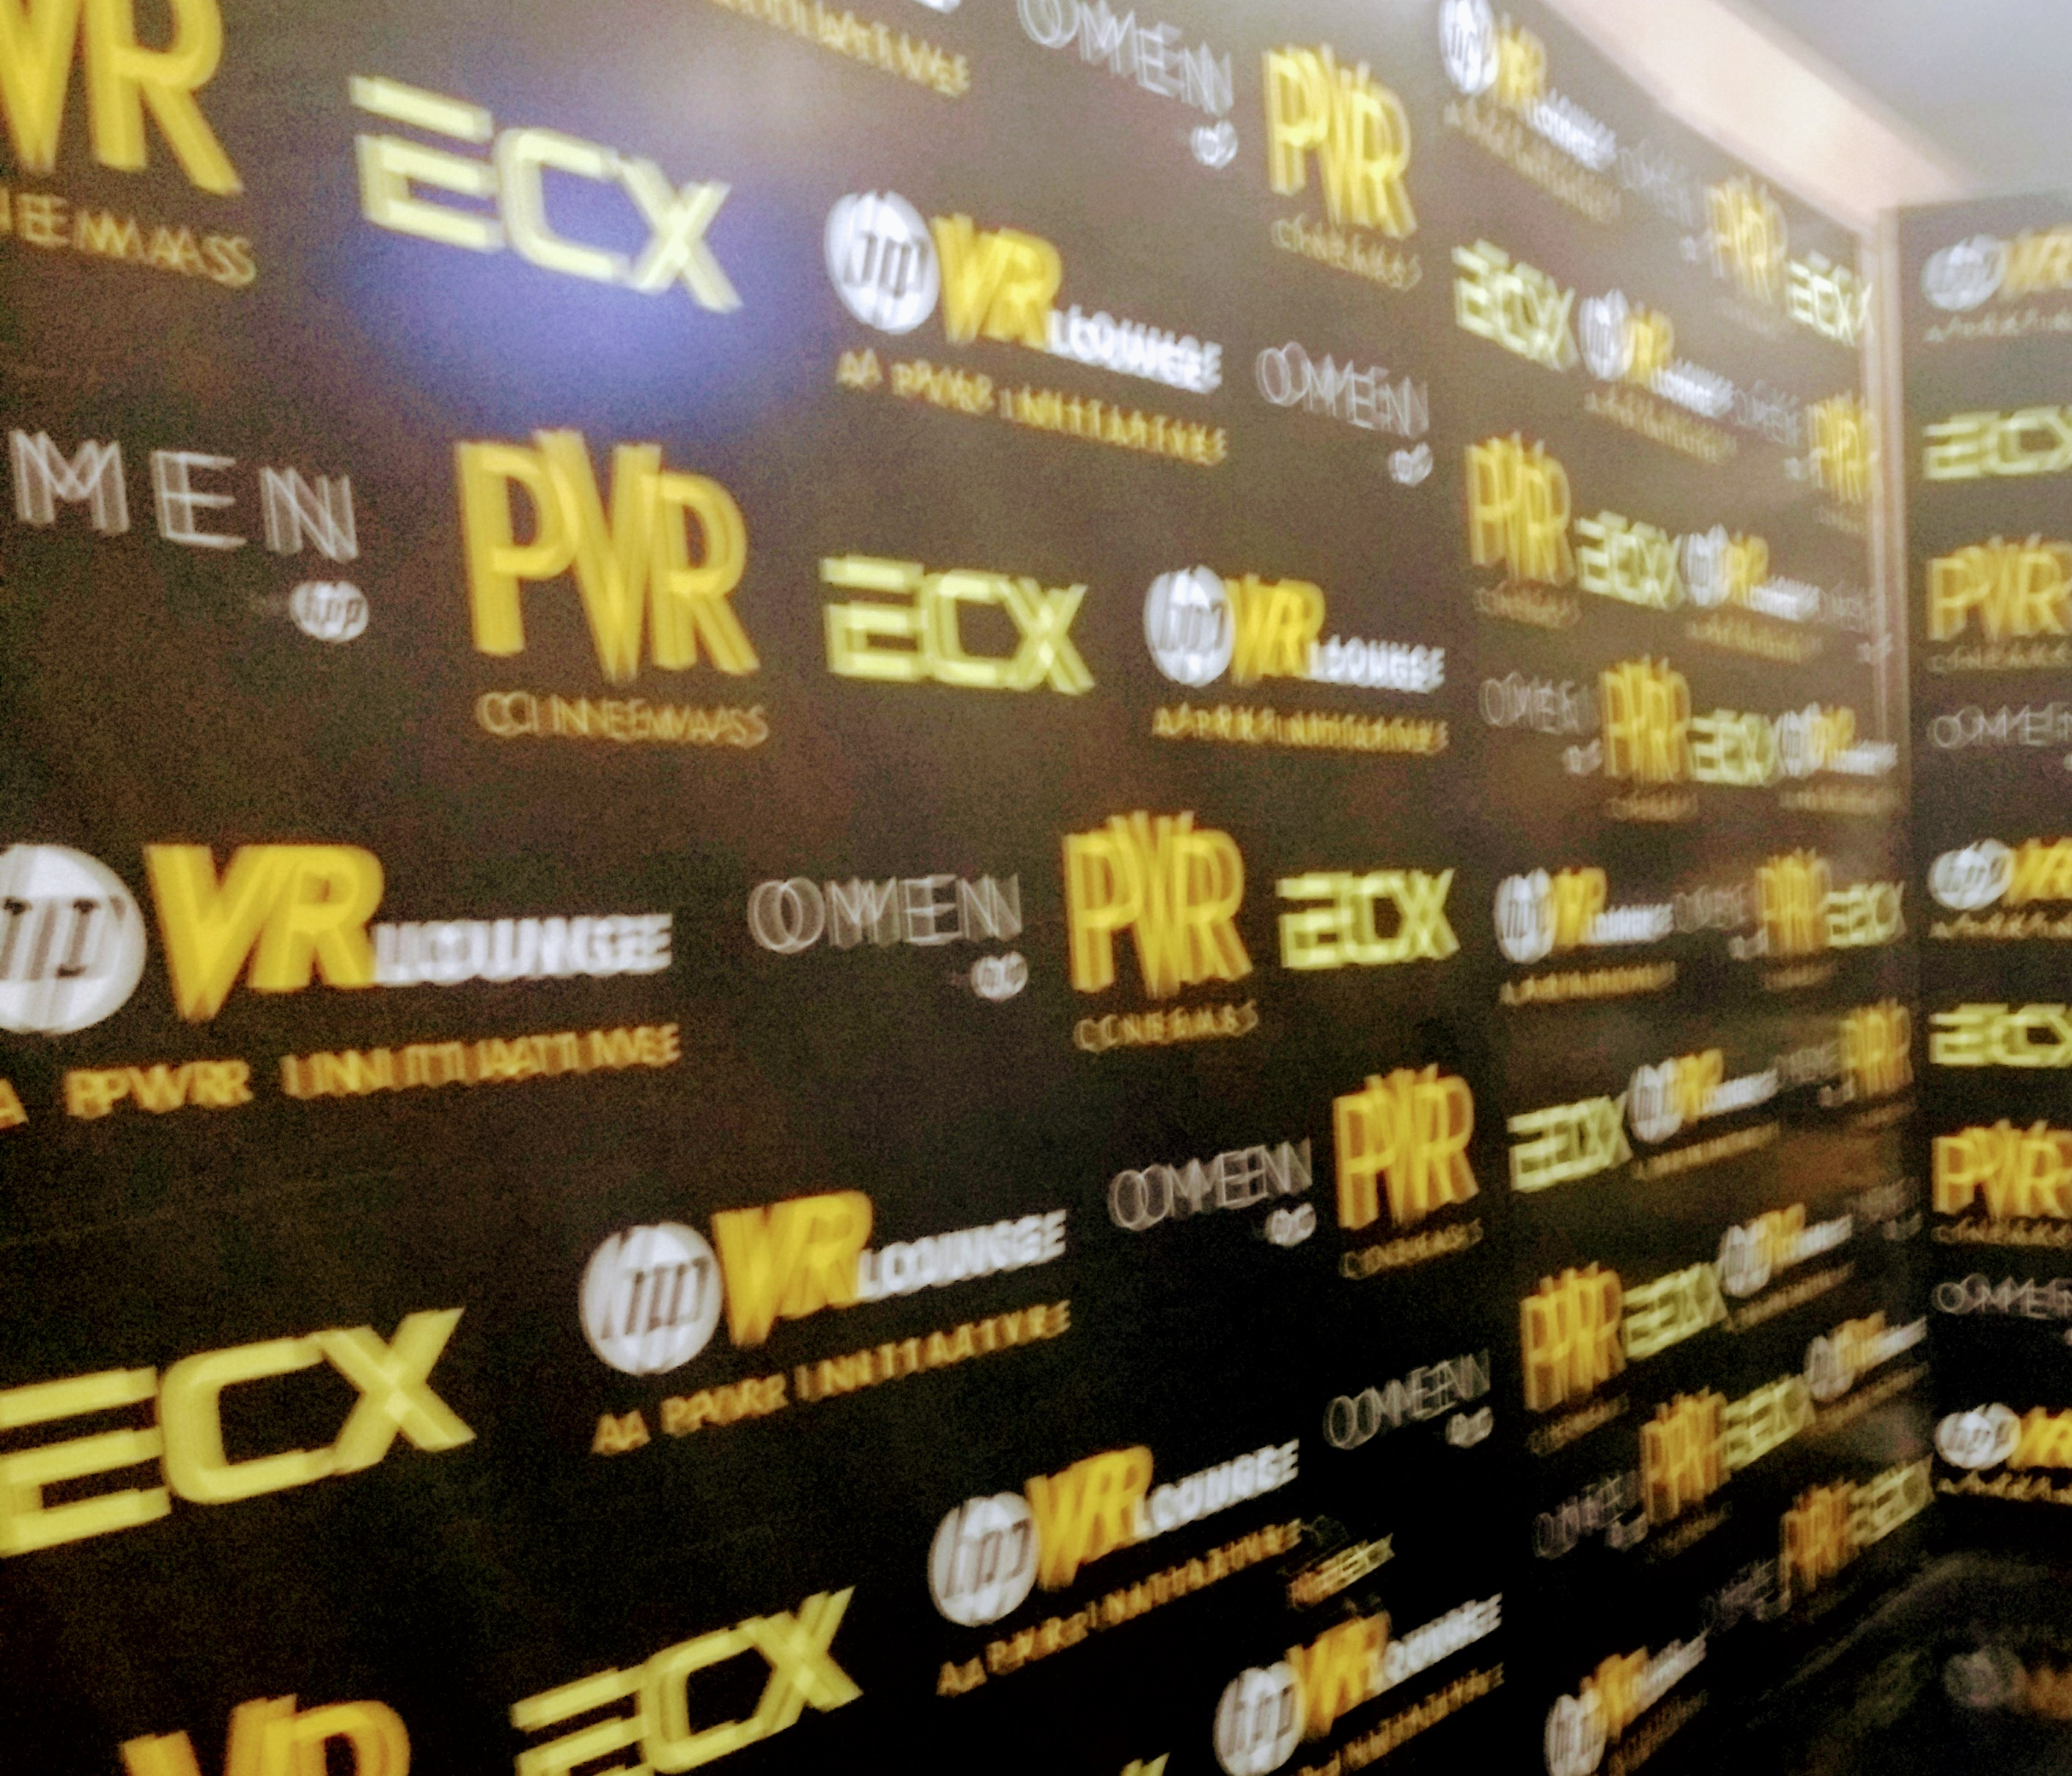 PVR Cinemas, HP Launch India's First Virtual Reality Lounge in Noida